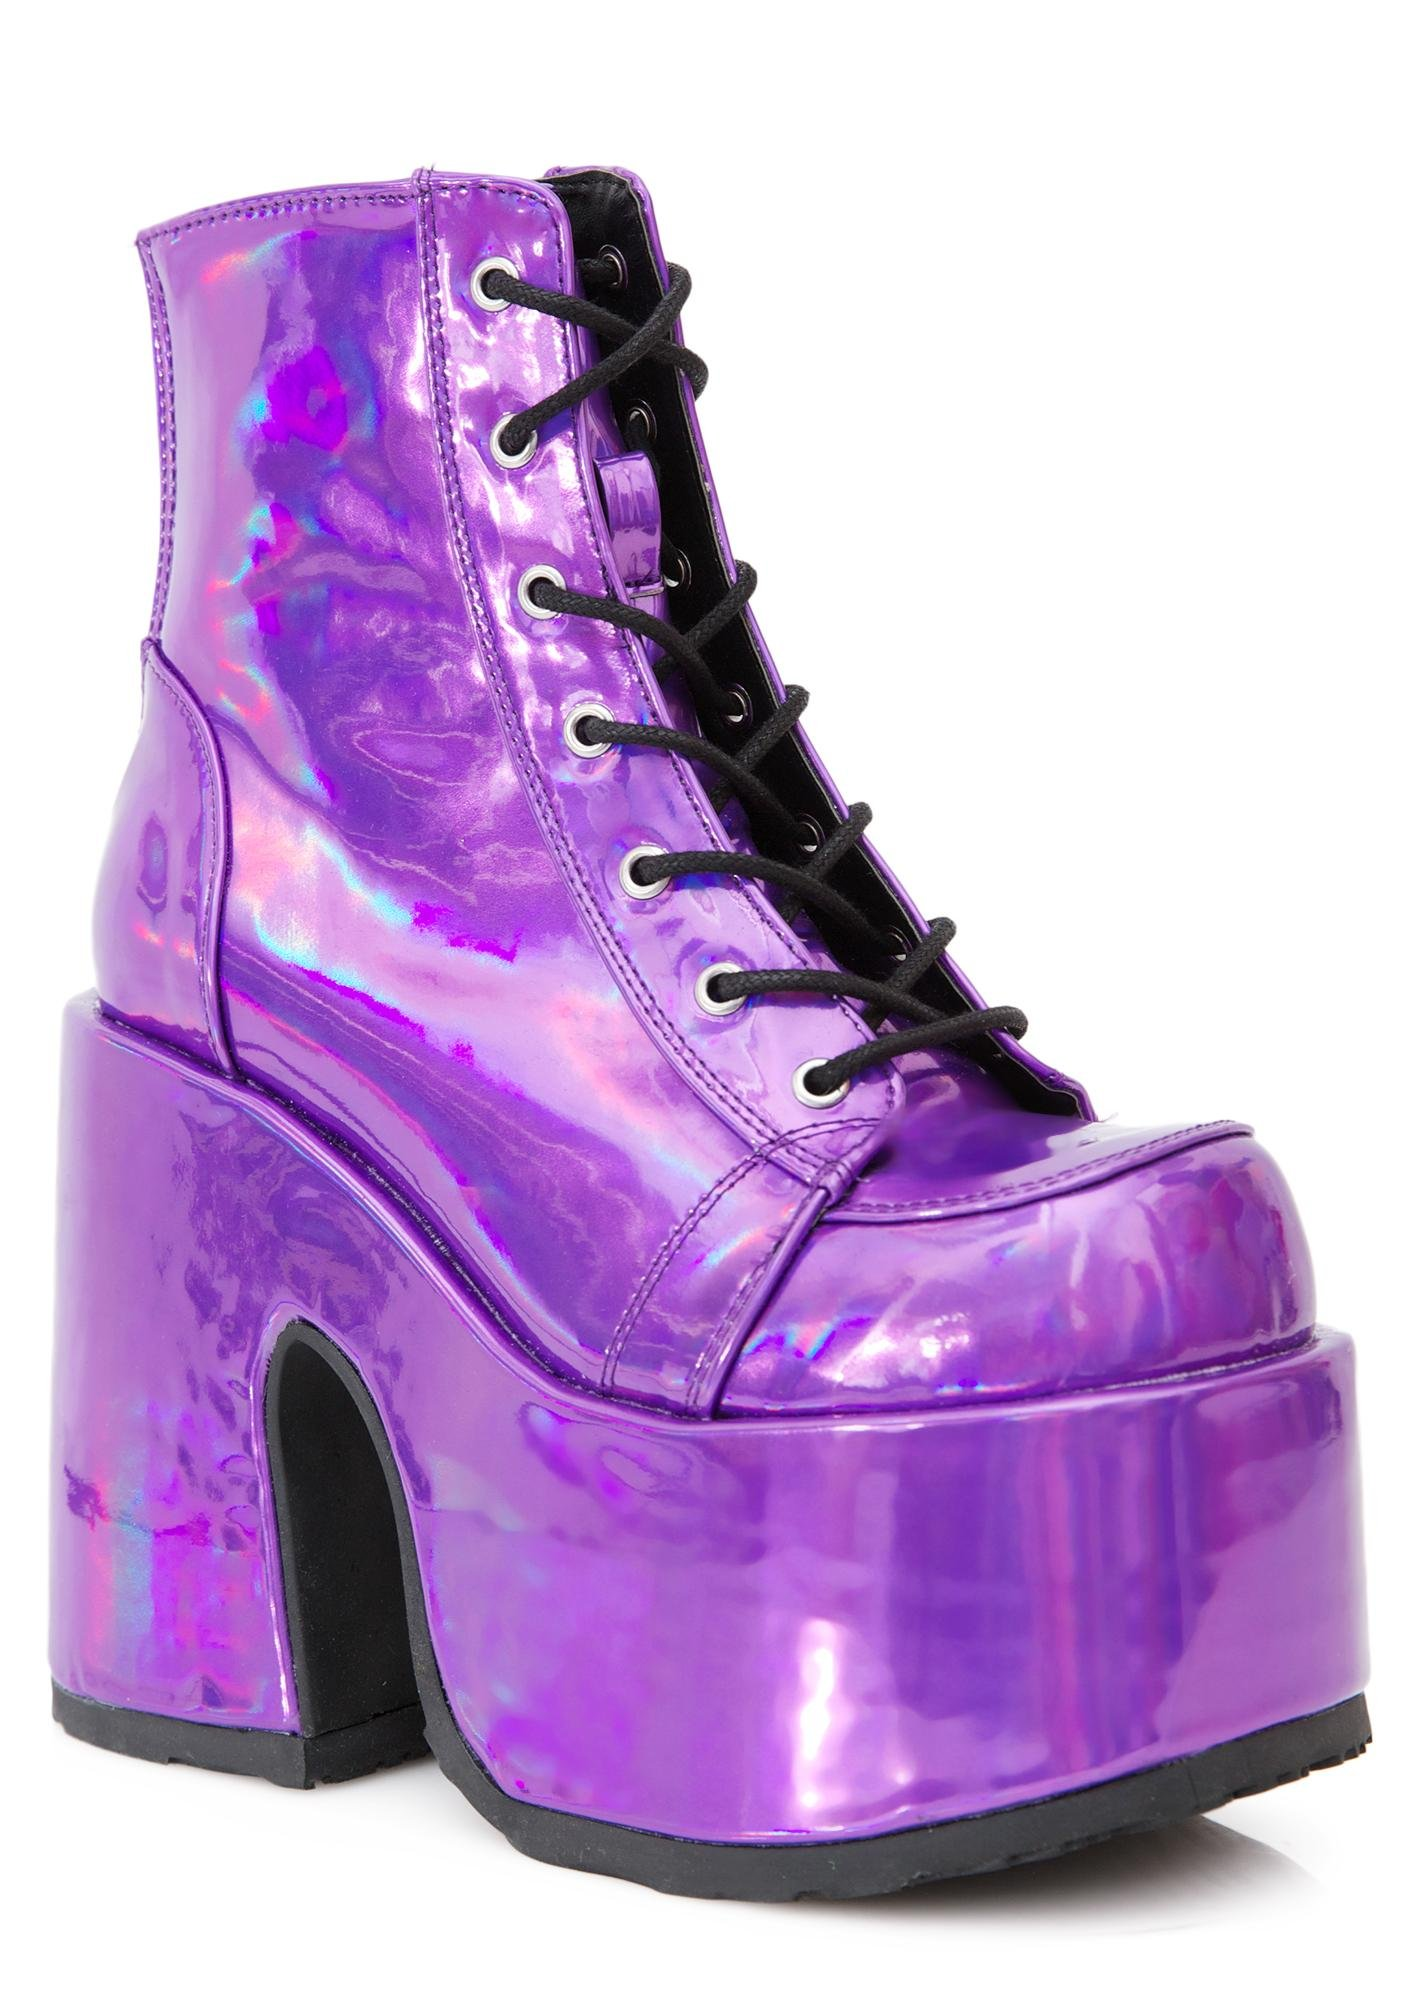 Demonia Rave Royalty Platform Boots